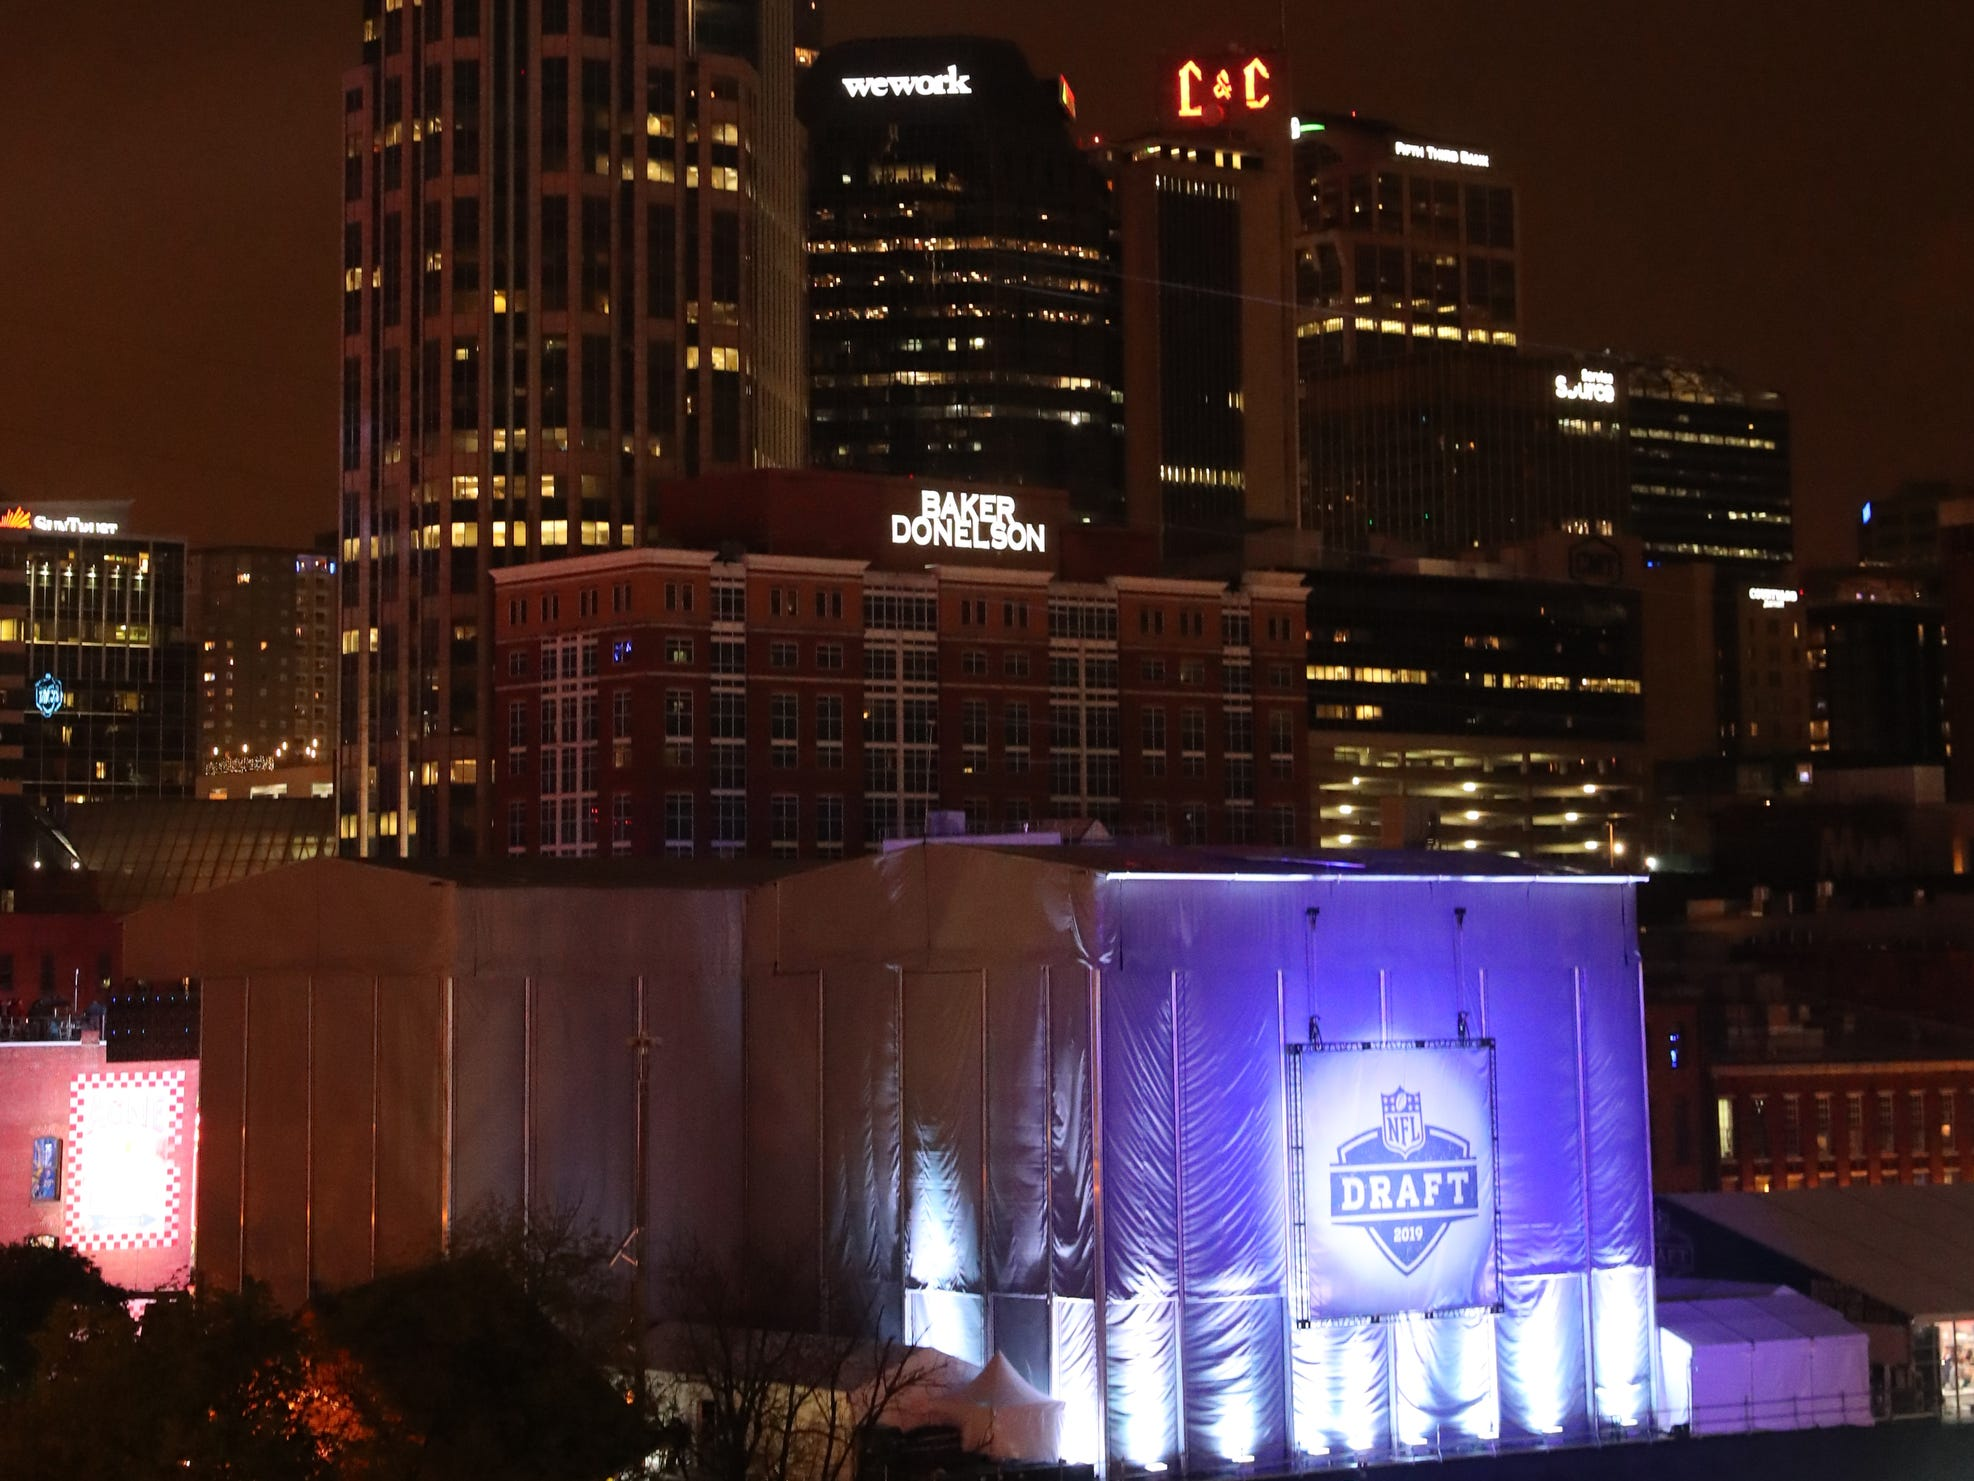 The back of the stage on lower Broadway is lit up with the Draft logo on the first night of the NFL Draft on Thursday, April 25, 2019, in Nashville, Tennessee.